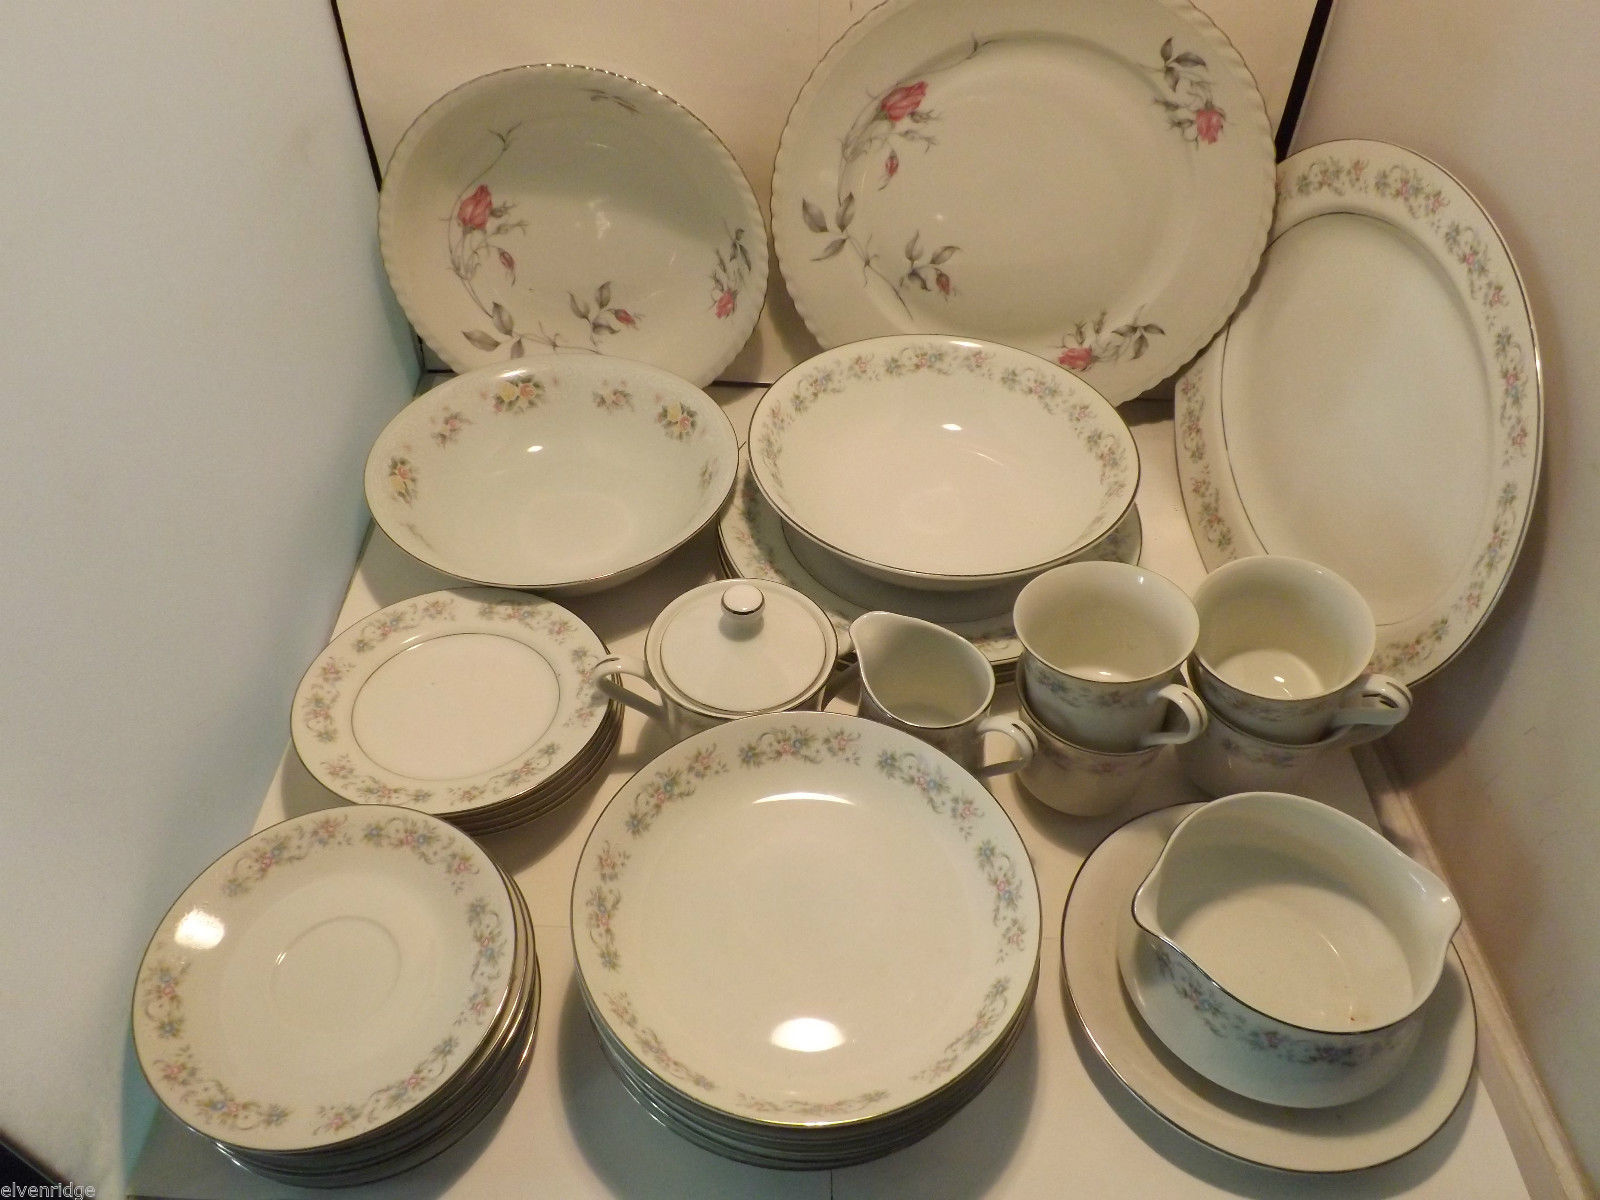 Royal Gallery Fine China Set, Bohemian China Pieces, Ping's China Piece